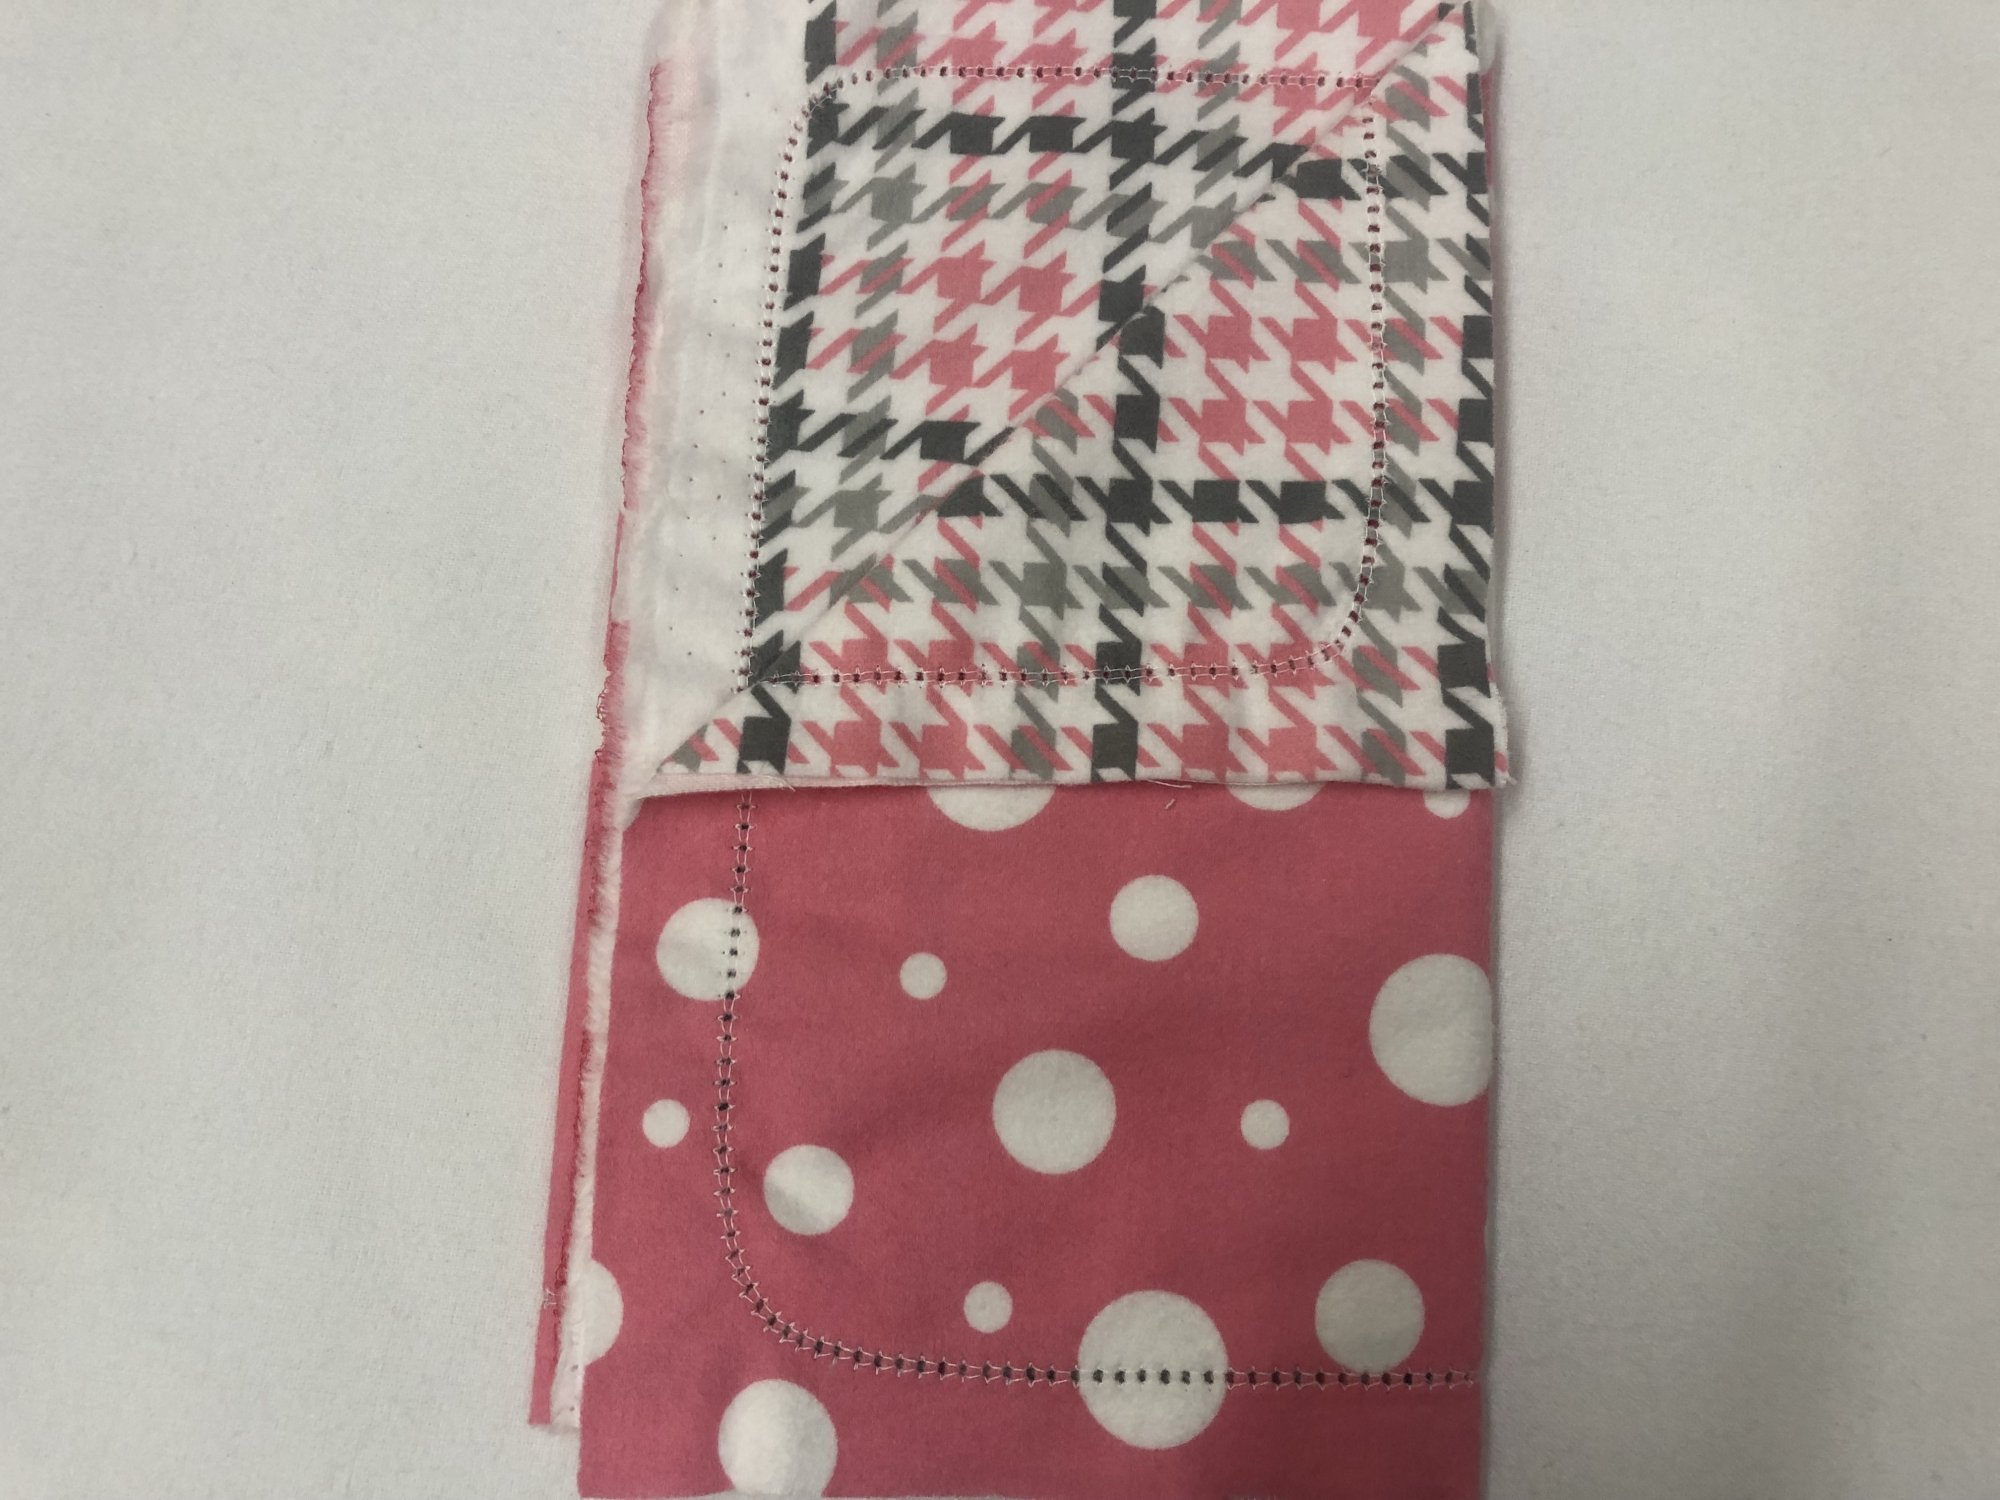 Large white polka dots on pink background with grey/pink houndstooth on white burp